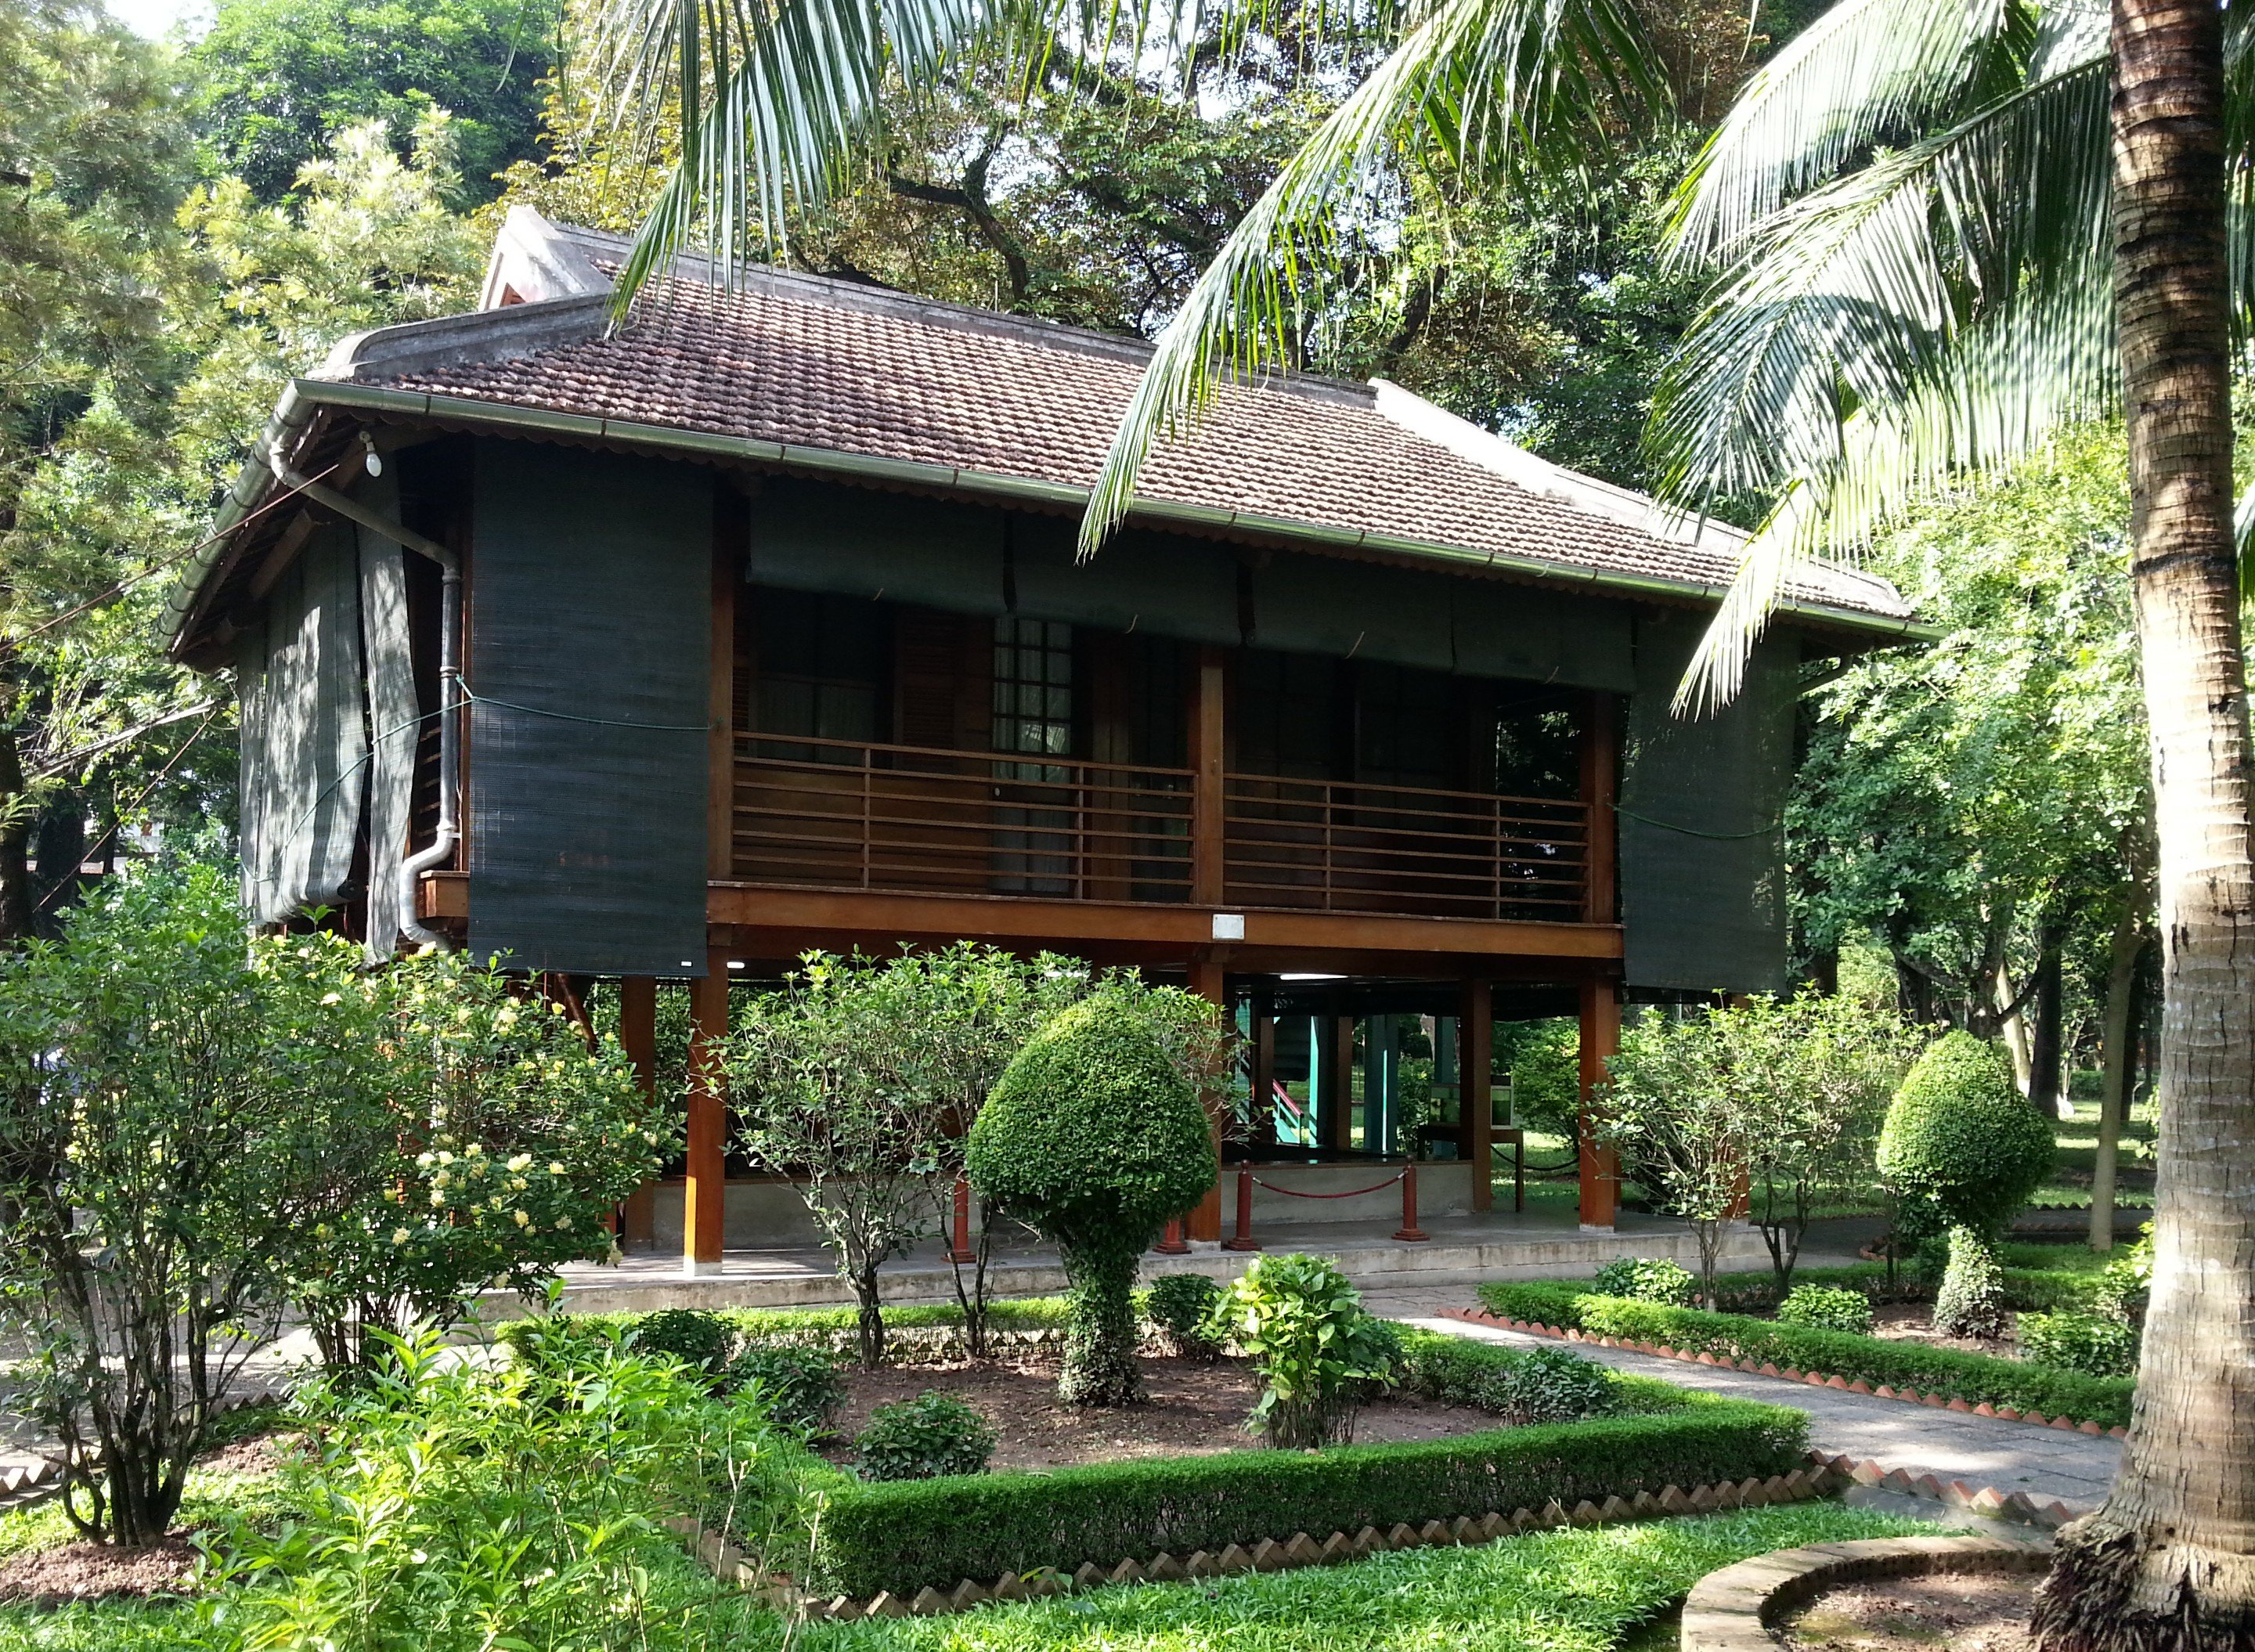 House on stilts where Ho Chi Minh lived